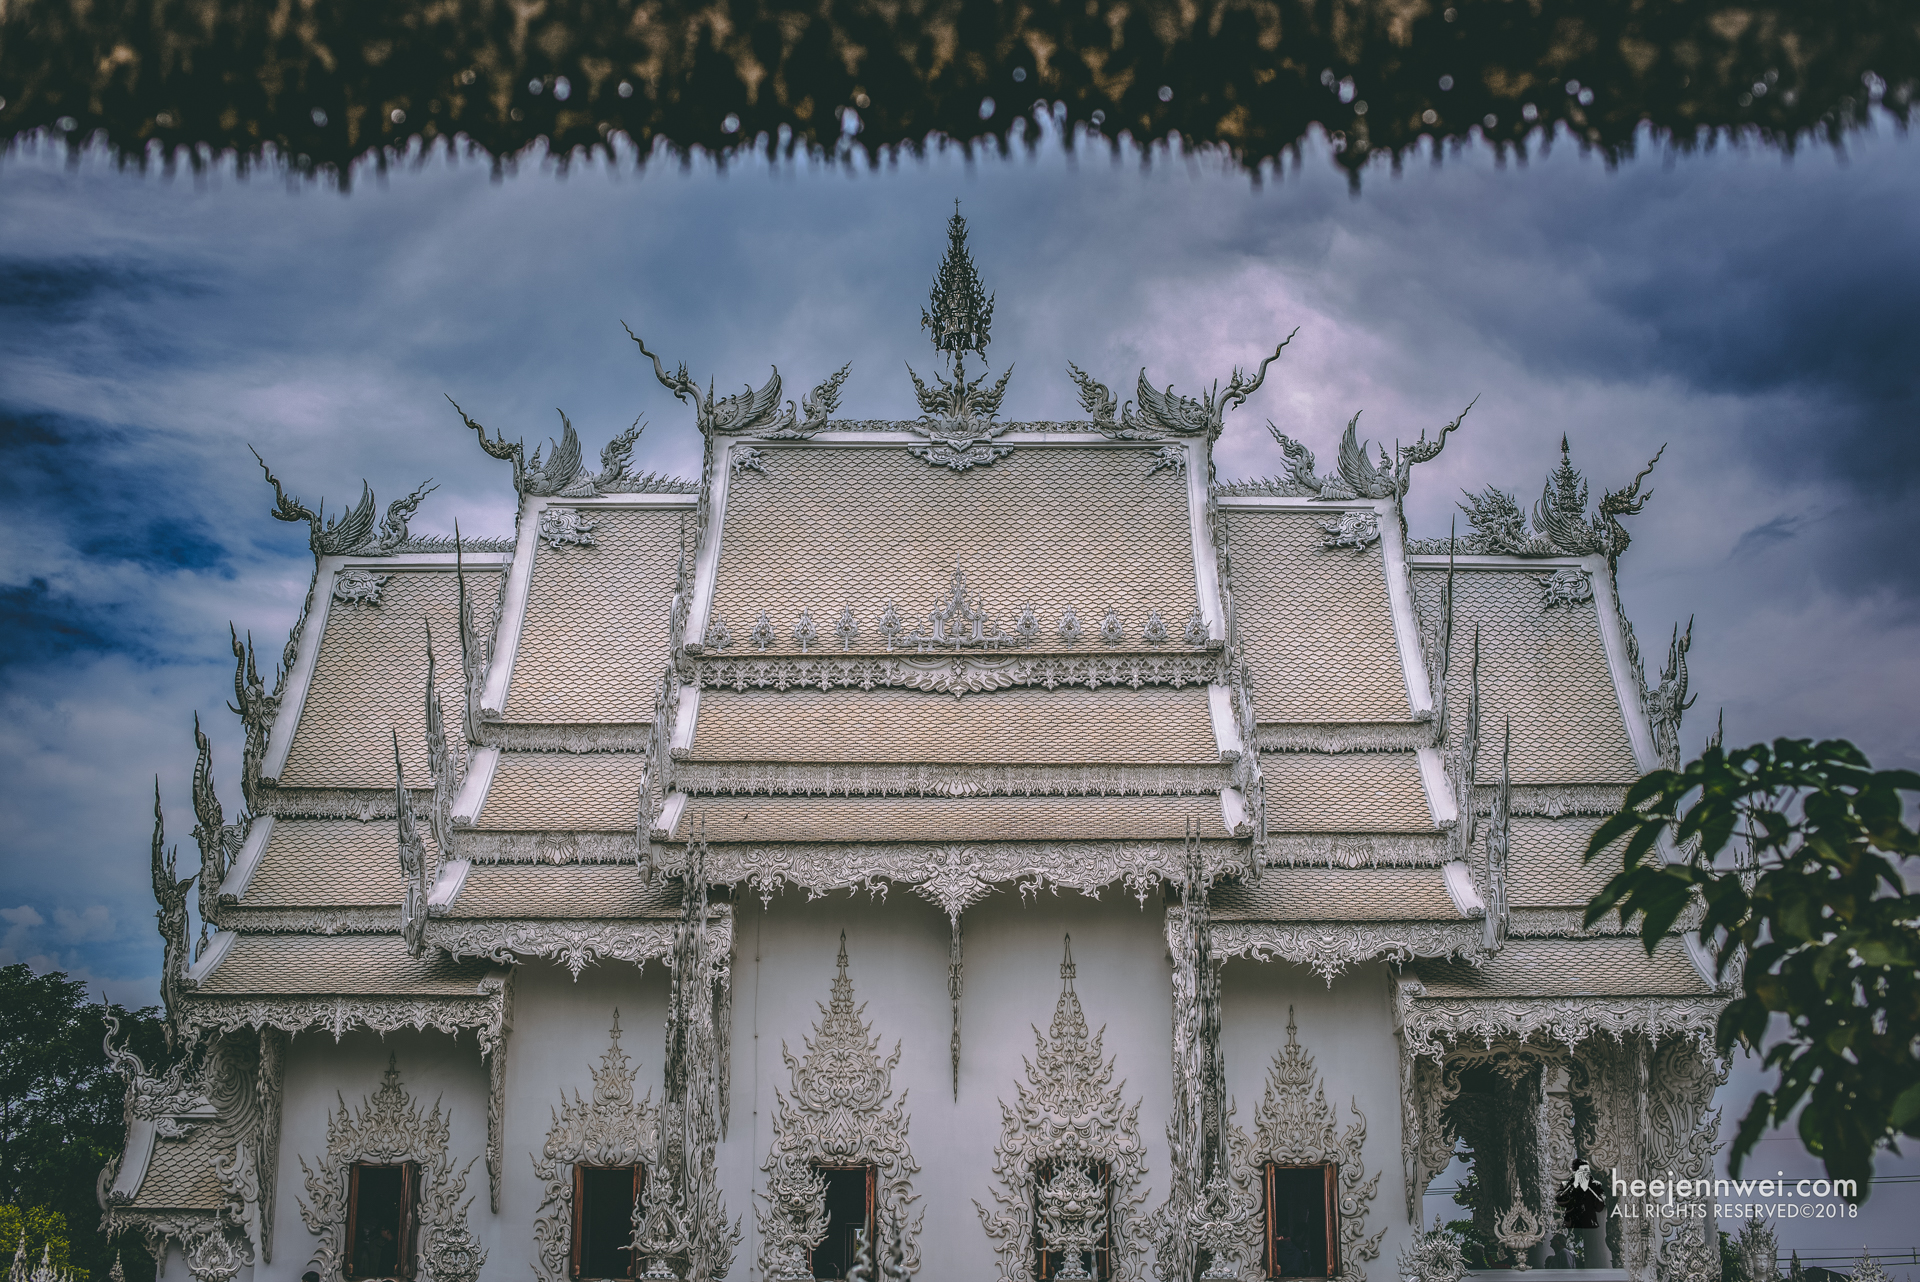 Wat Rong Khun took the fixation with painstaking detail and beauty to the next level.